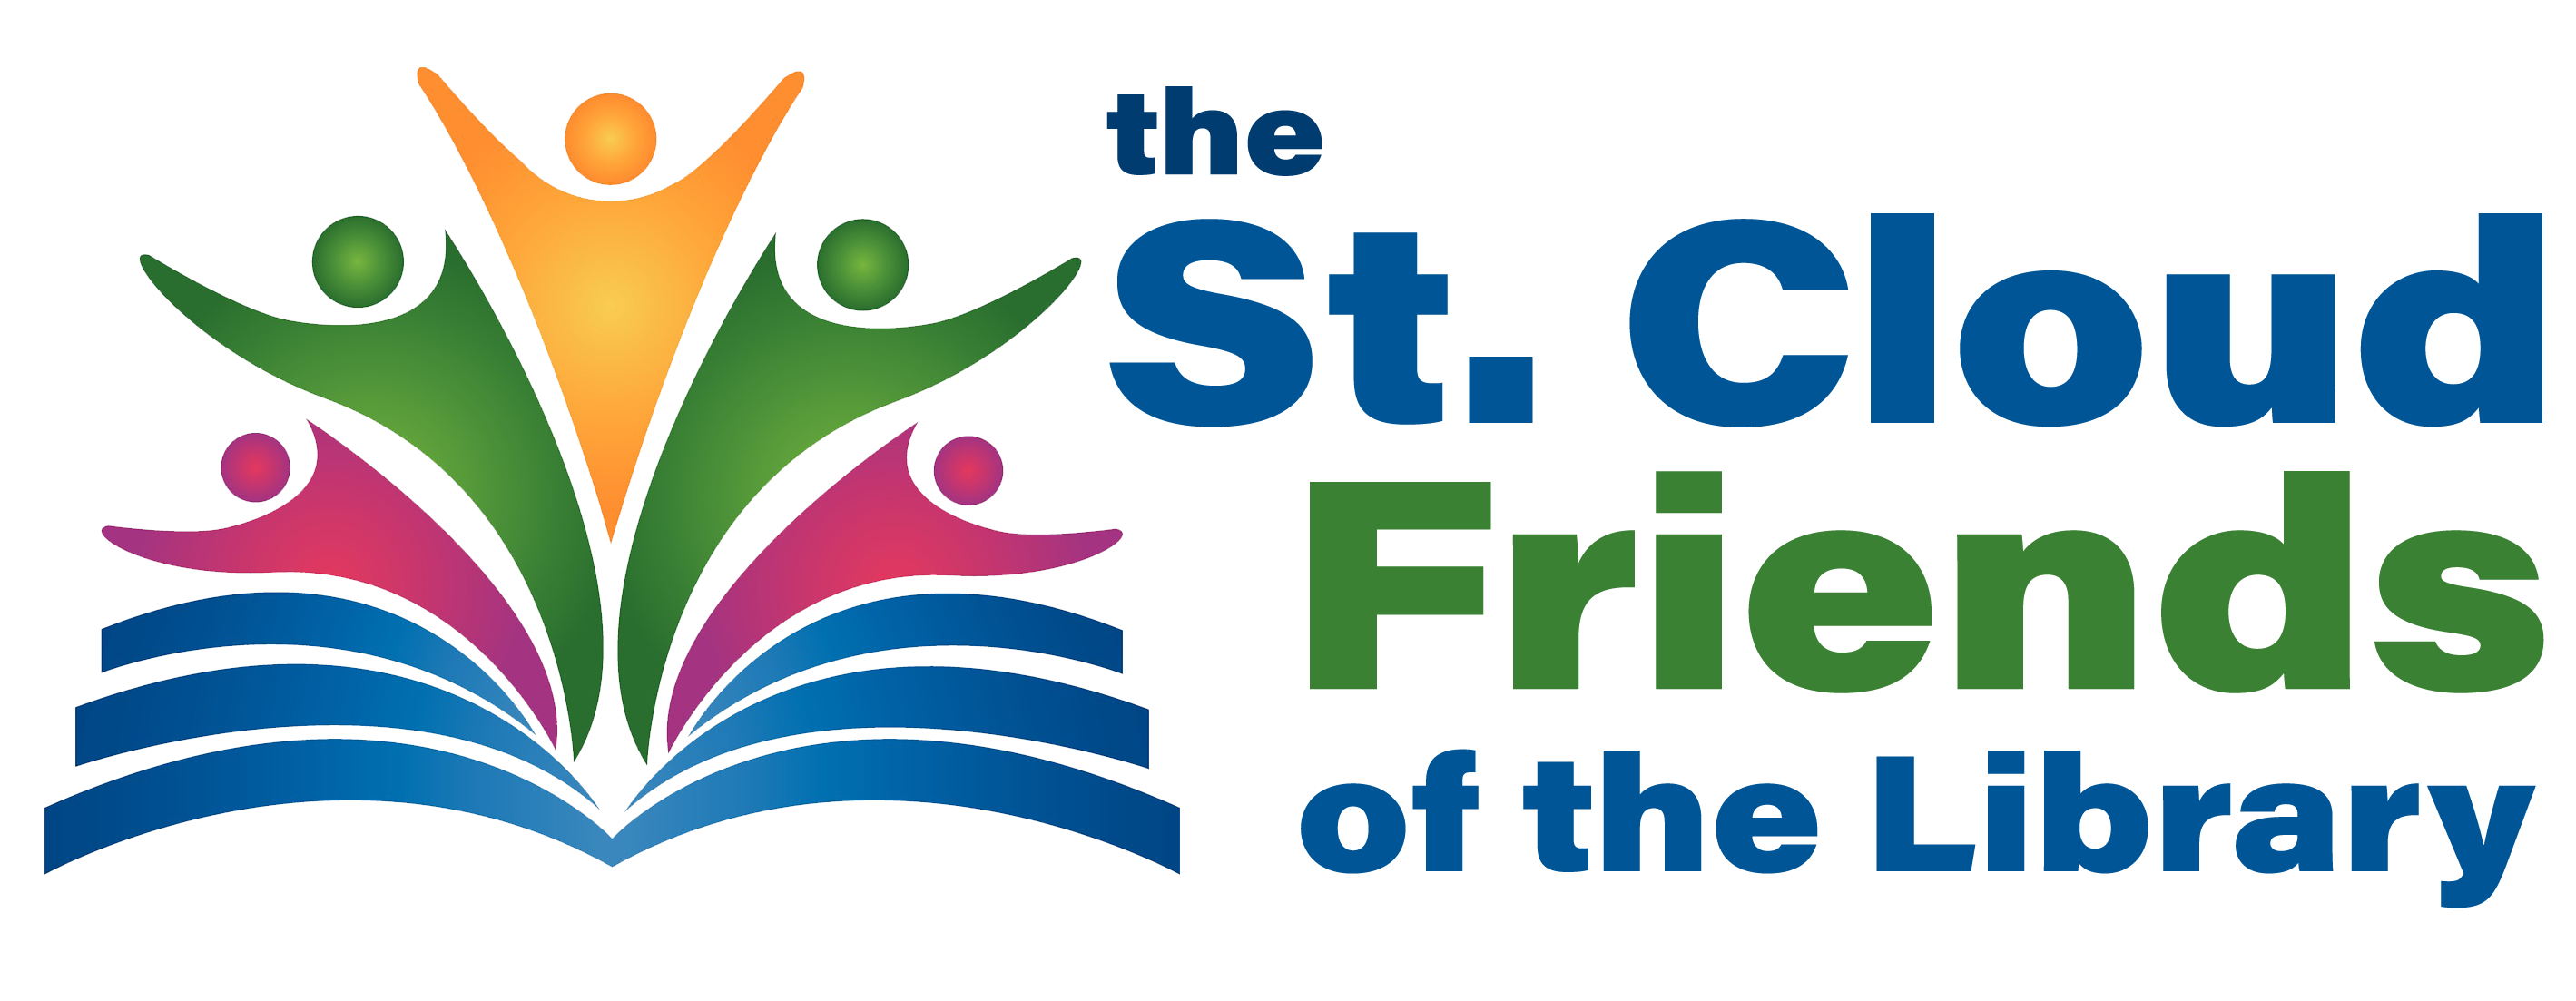 St. Cloud Friends of the Library logo